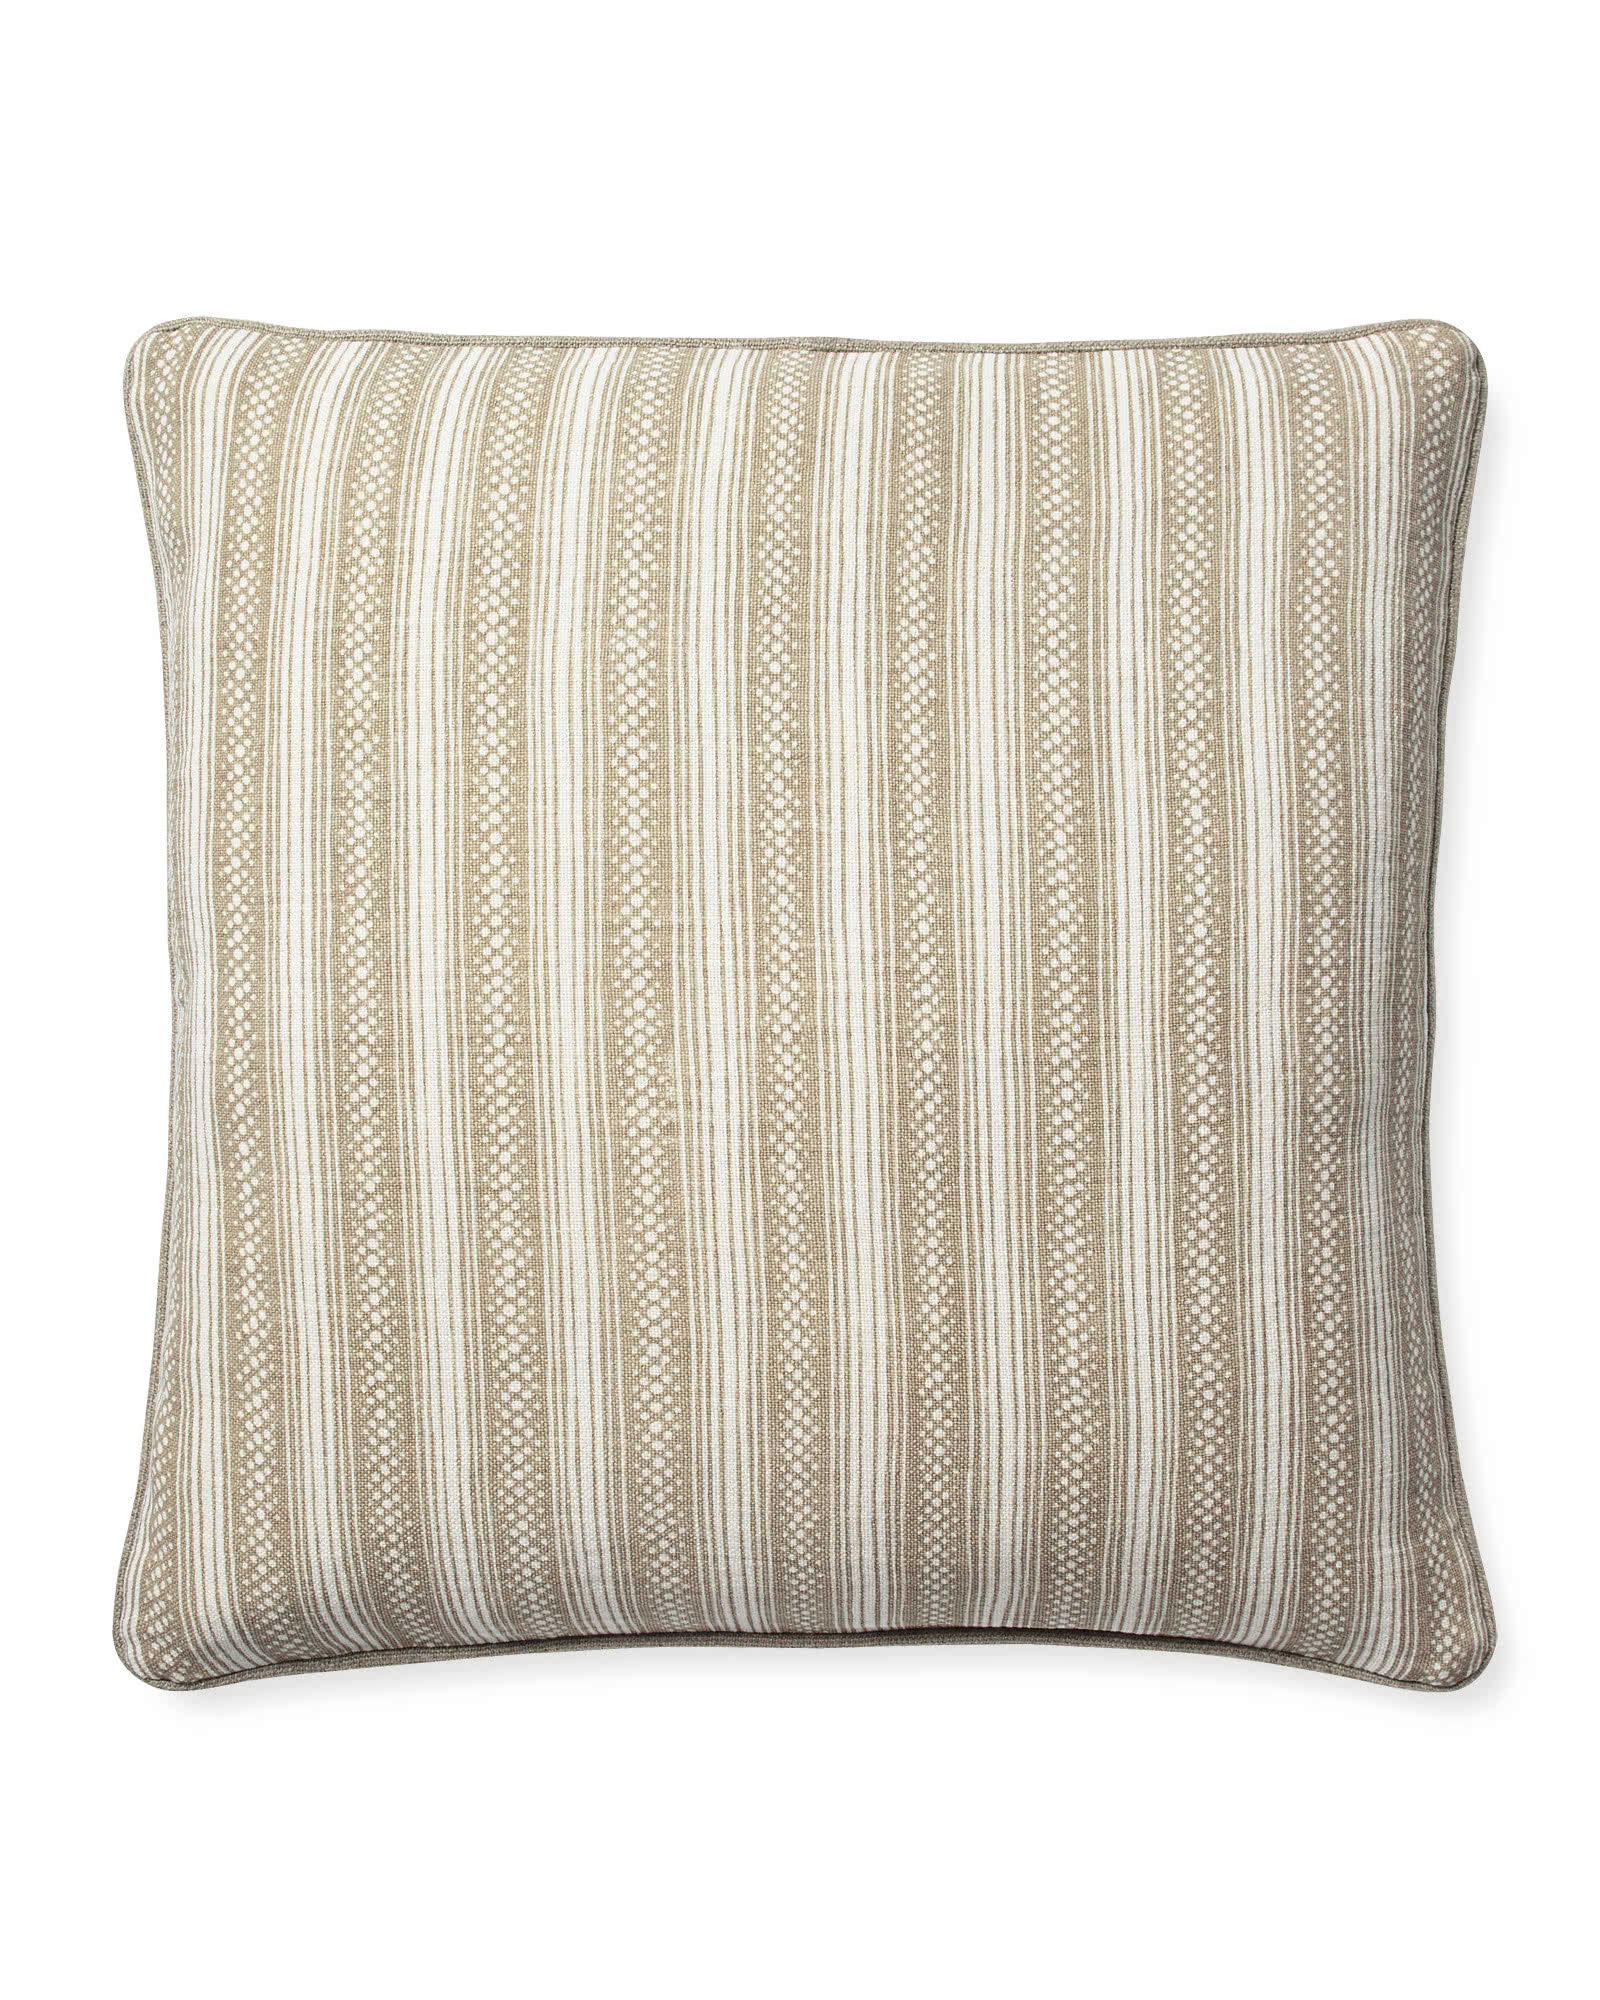 Stowe Pillow Cover,